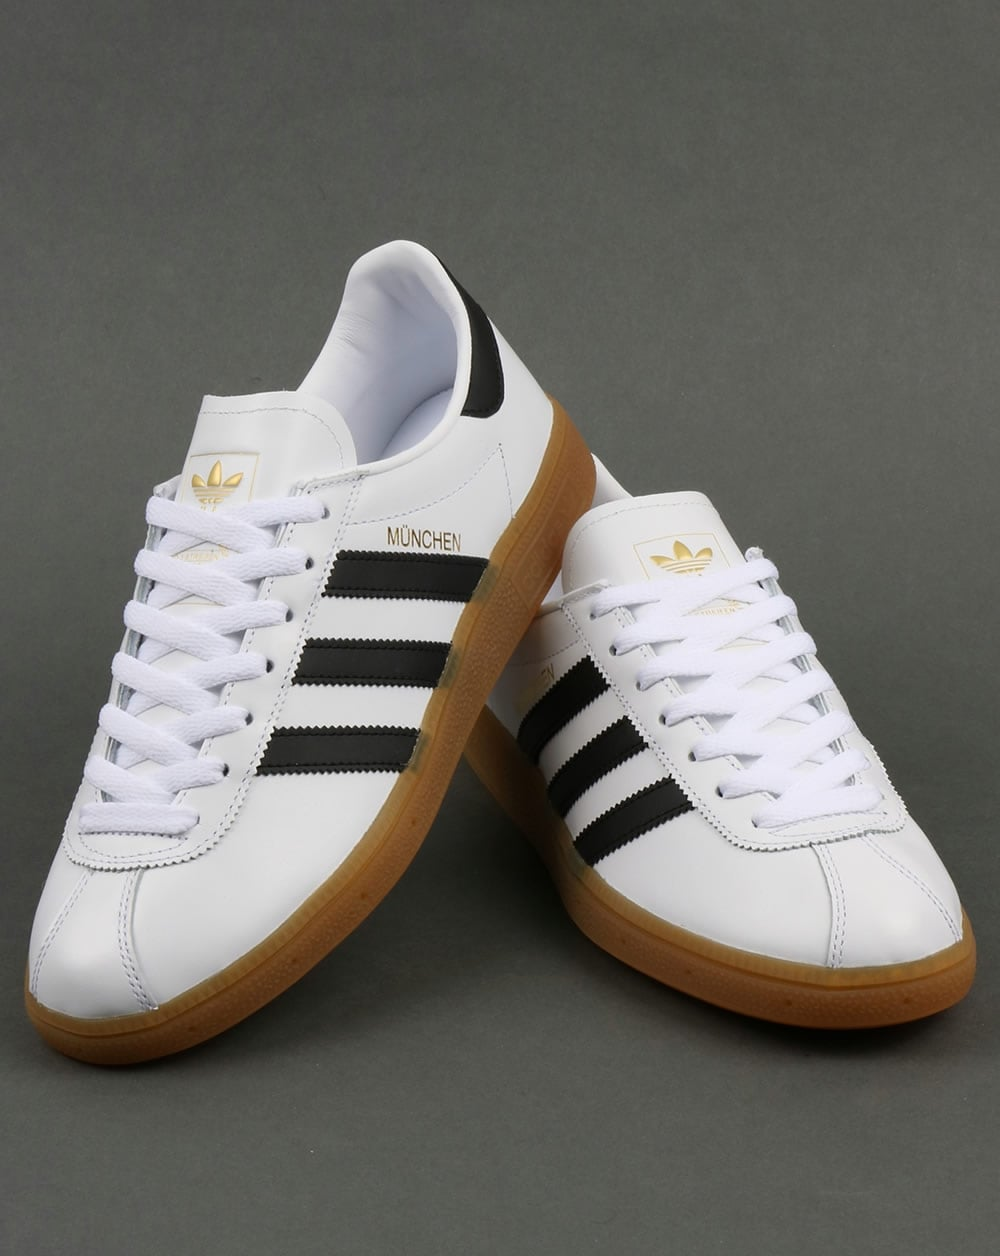 adidas munchen trainers white black leather originals shoes mens. Black Bedroom Furniture Sets. Home Design Ideas